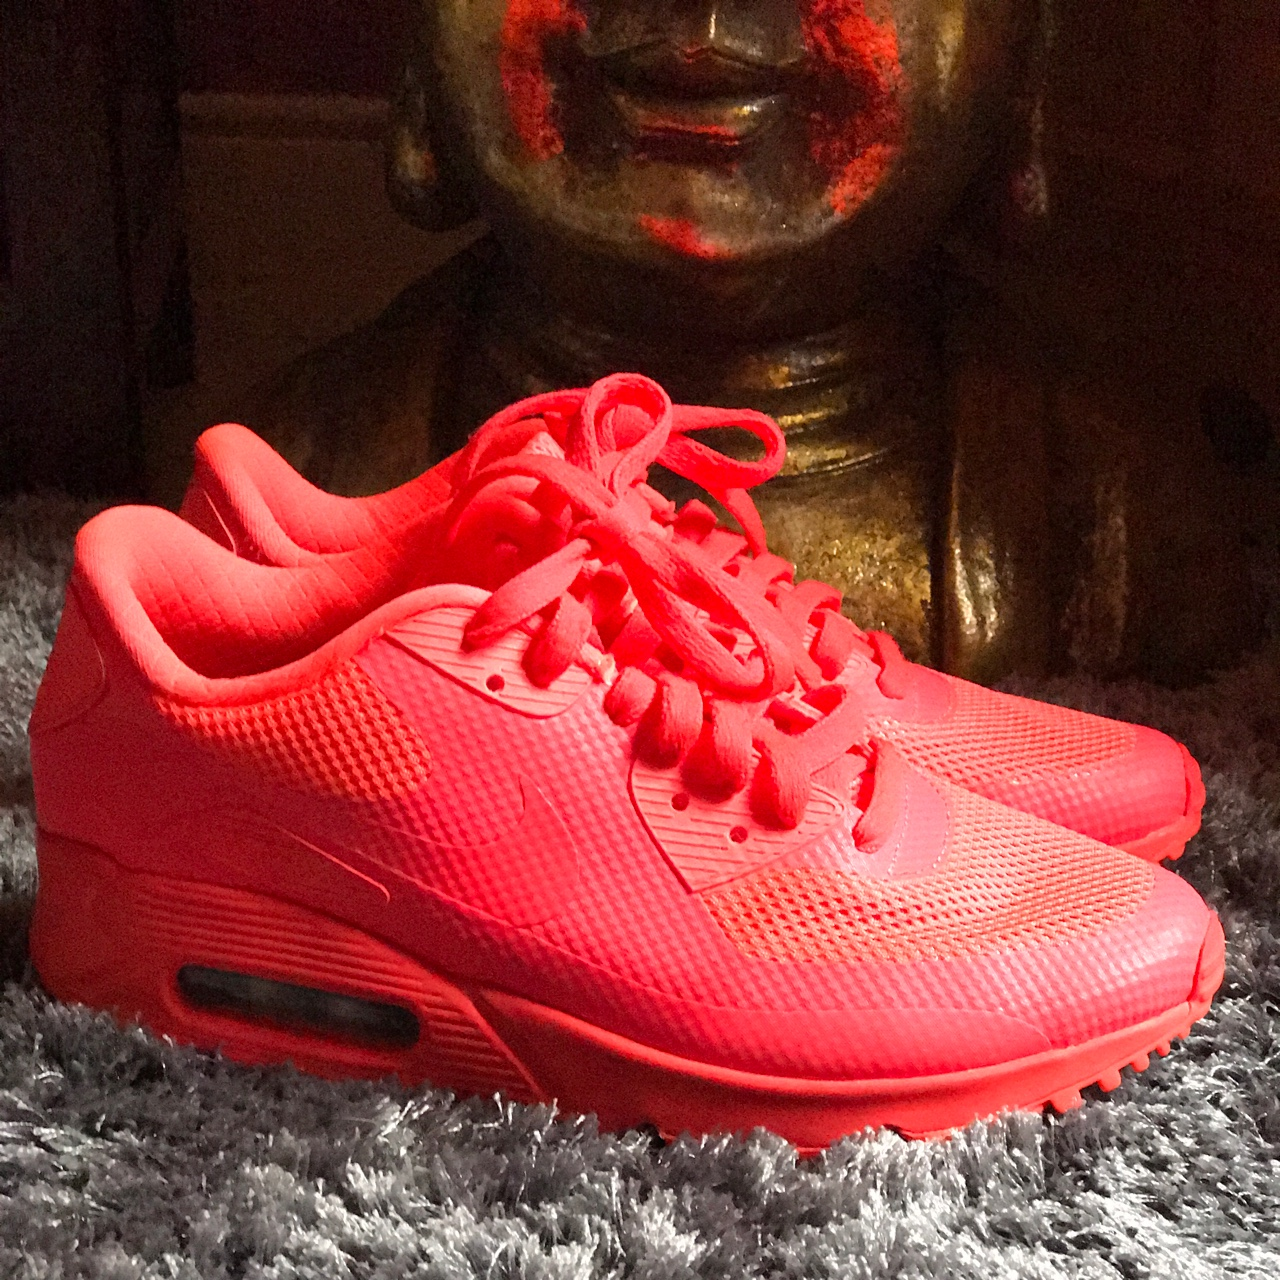 Nike Air Max 90 Ultra Moire in size 5 Colour: Bright Depop